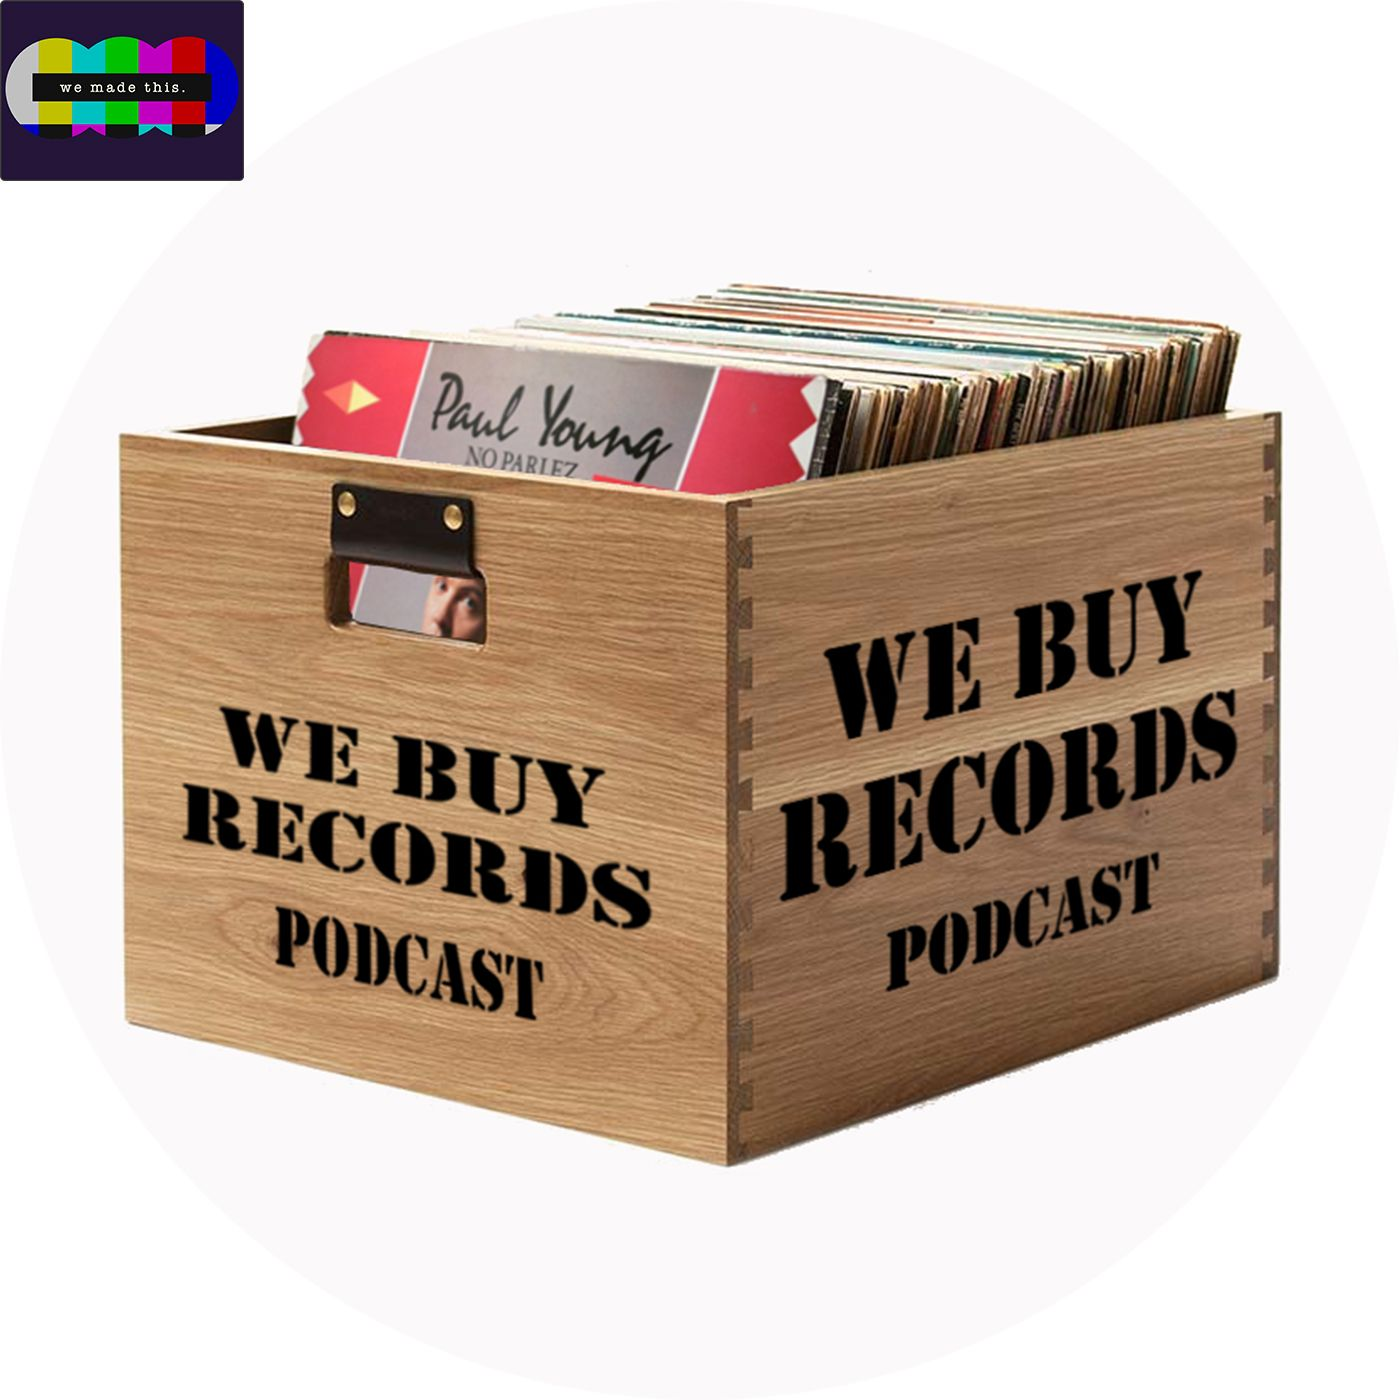 We Buy Records